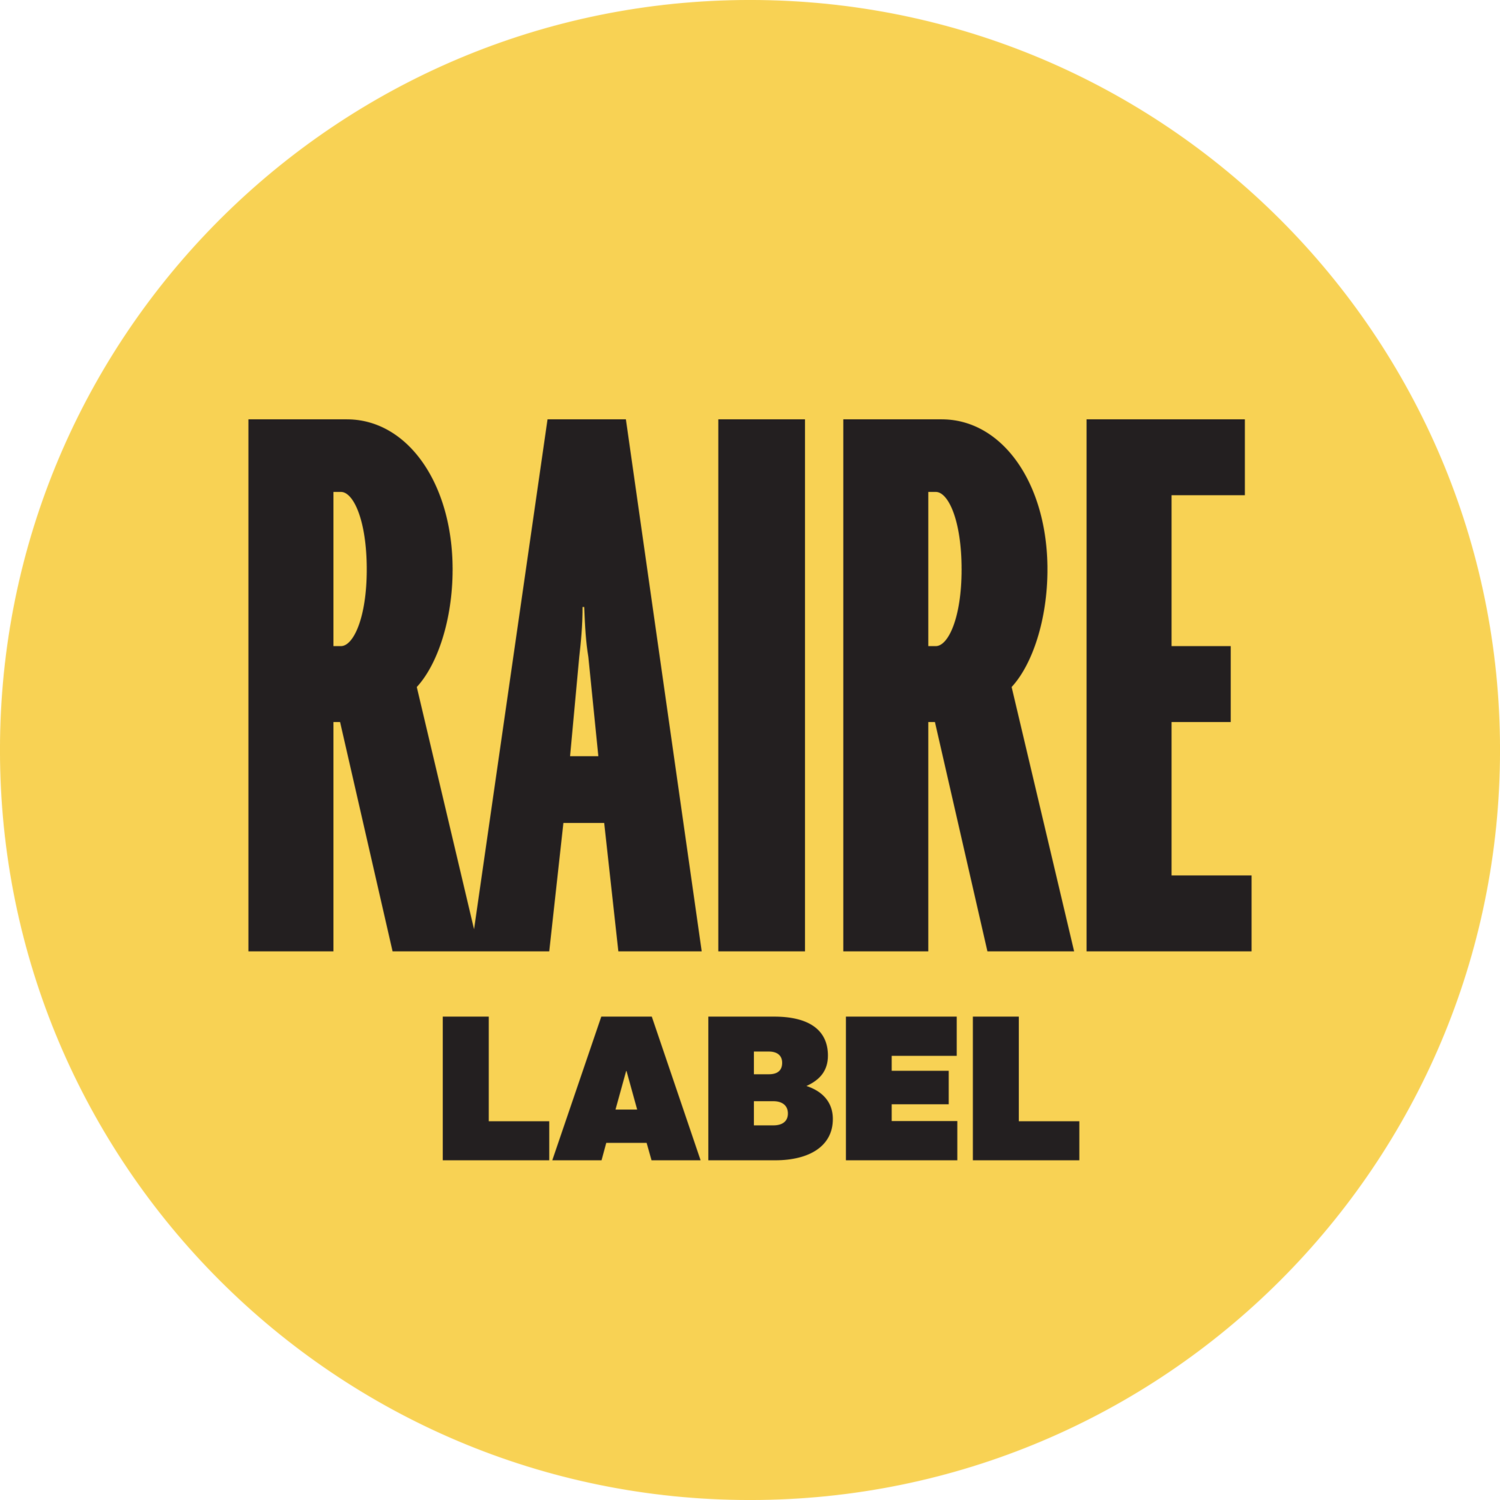 RAIRE LABEL